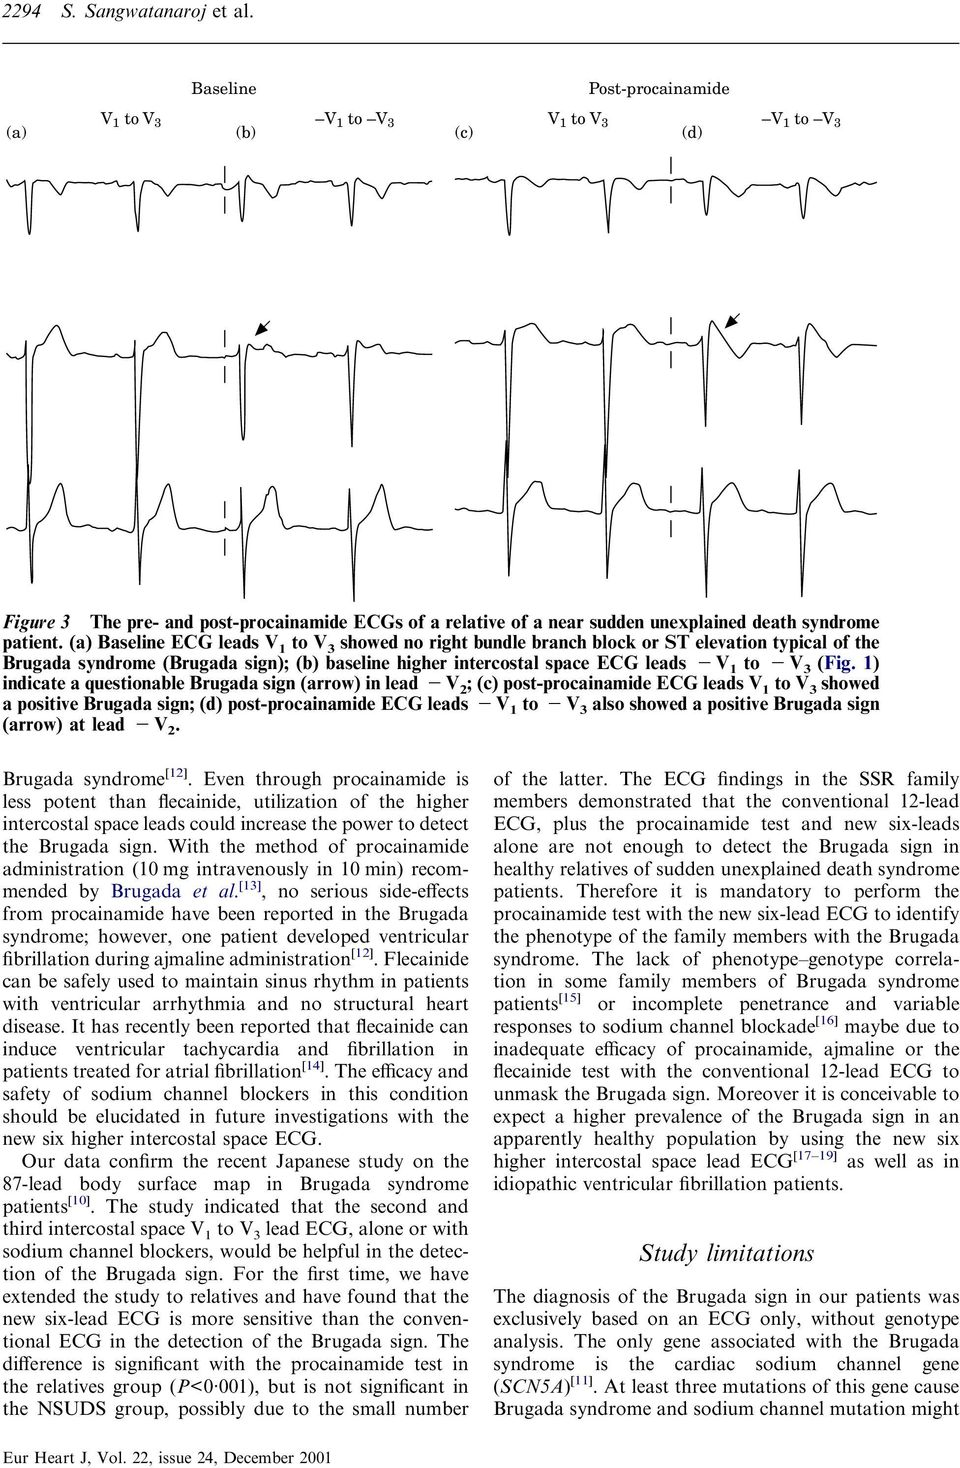 (a) Baseline ECG leads V to V 3 showed no right bundle branch block or ST elevation typical of the Brugada syndrome (); (b) baseline higher intercostal space ECG leads V to V 3 (Fig.